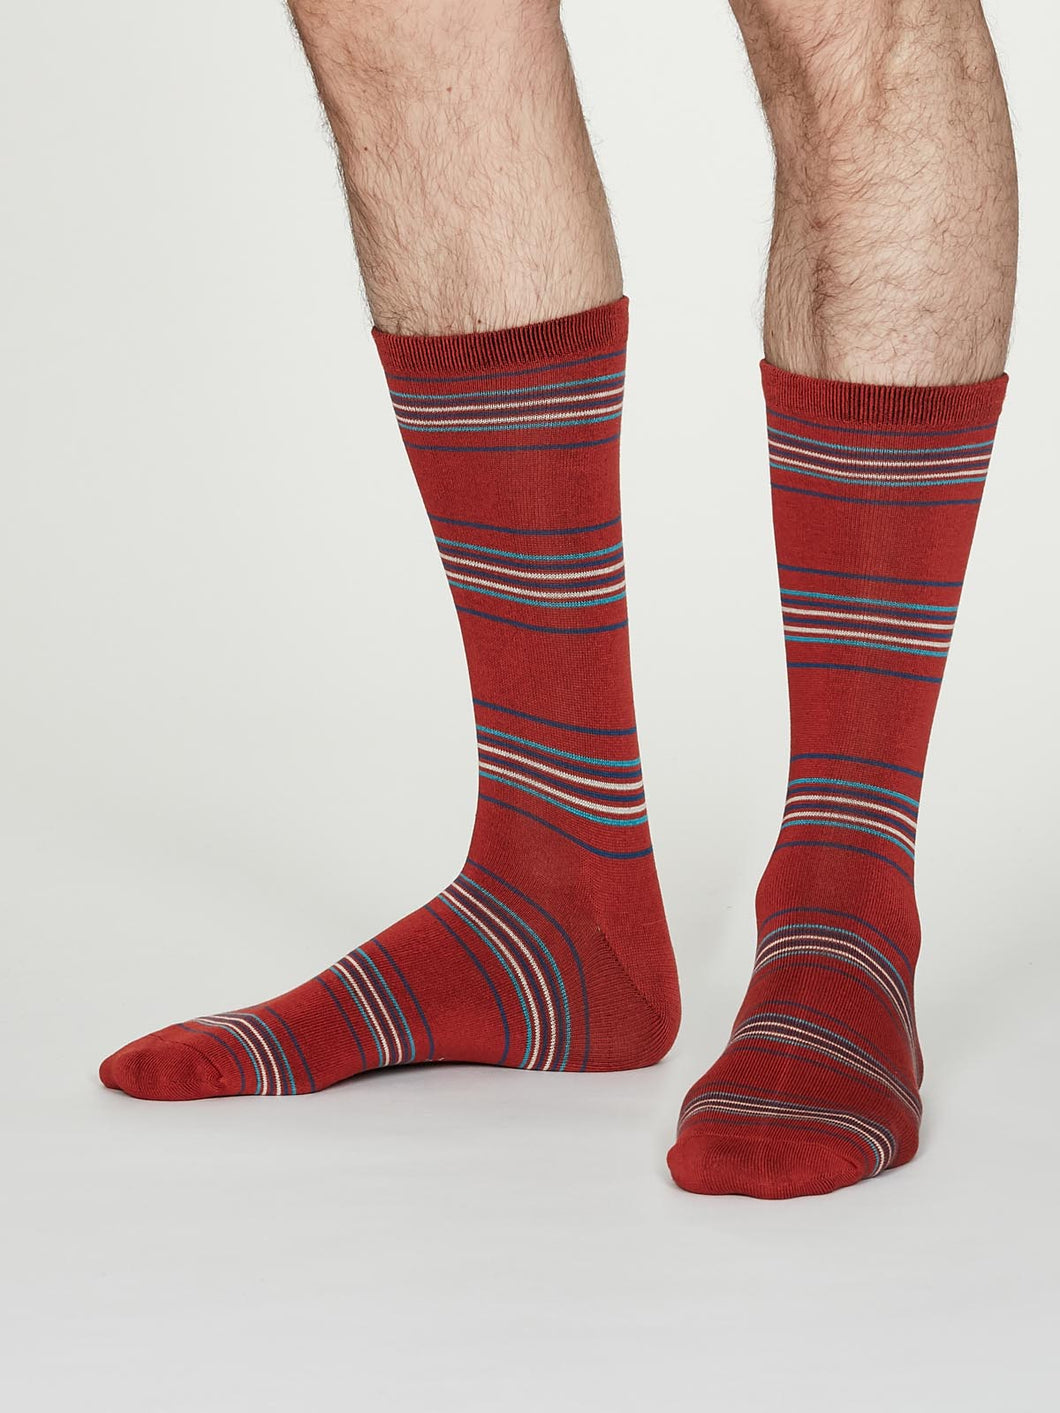 Thought Bamboo Men's Socks -  Nicolson Spiced Orange